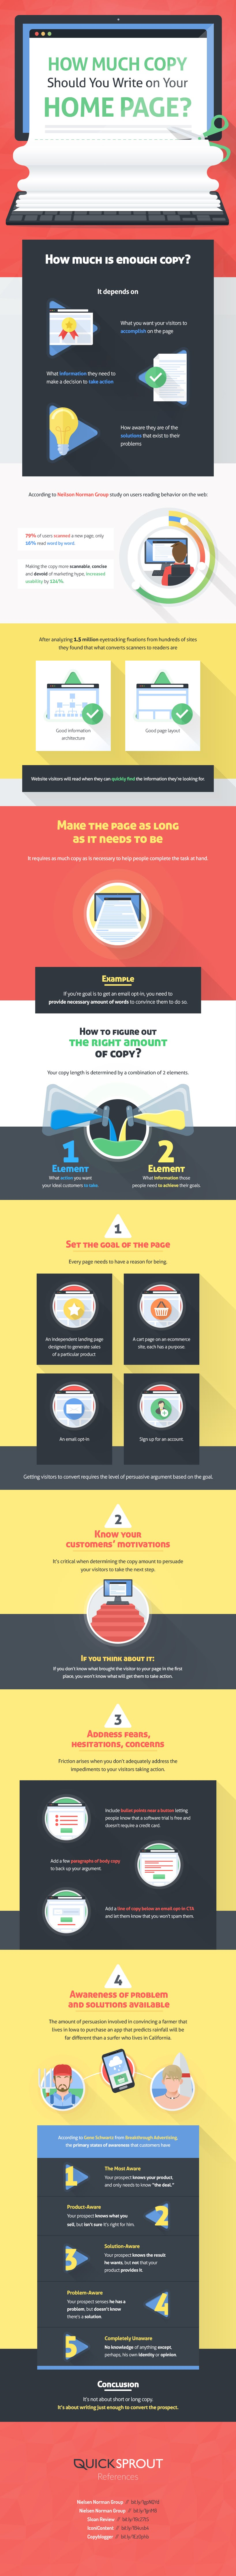 How Much Copy Should You Write on Your Homepage? - #infographic